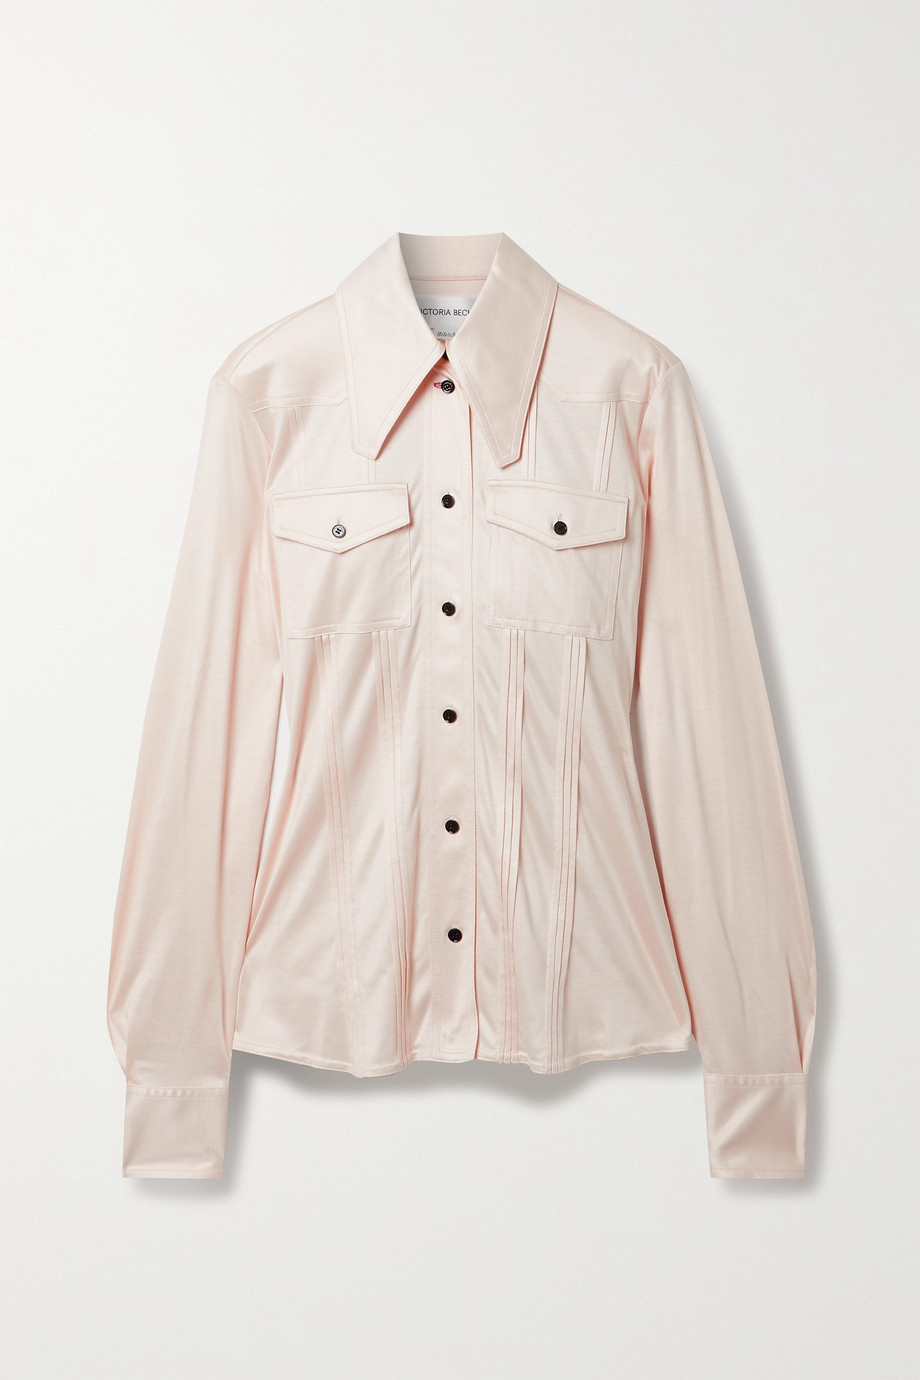 Victoria Beckham Pintucked silk-satin jersey shirt